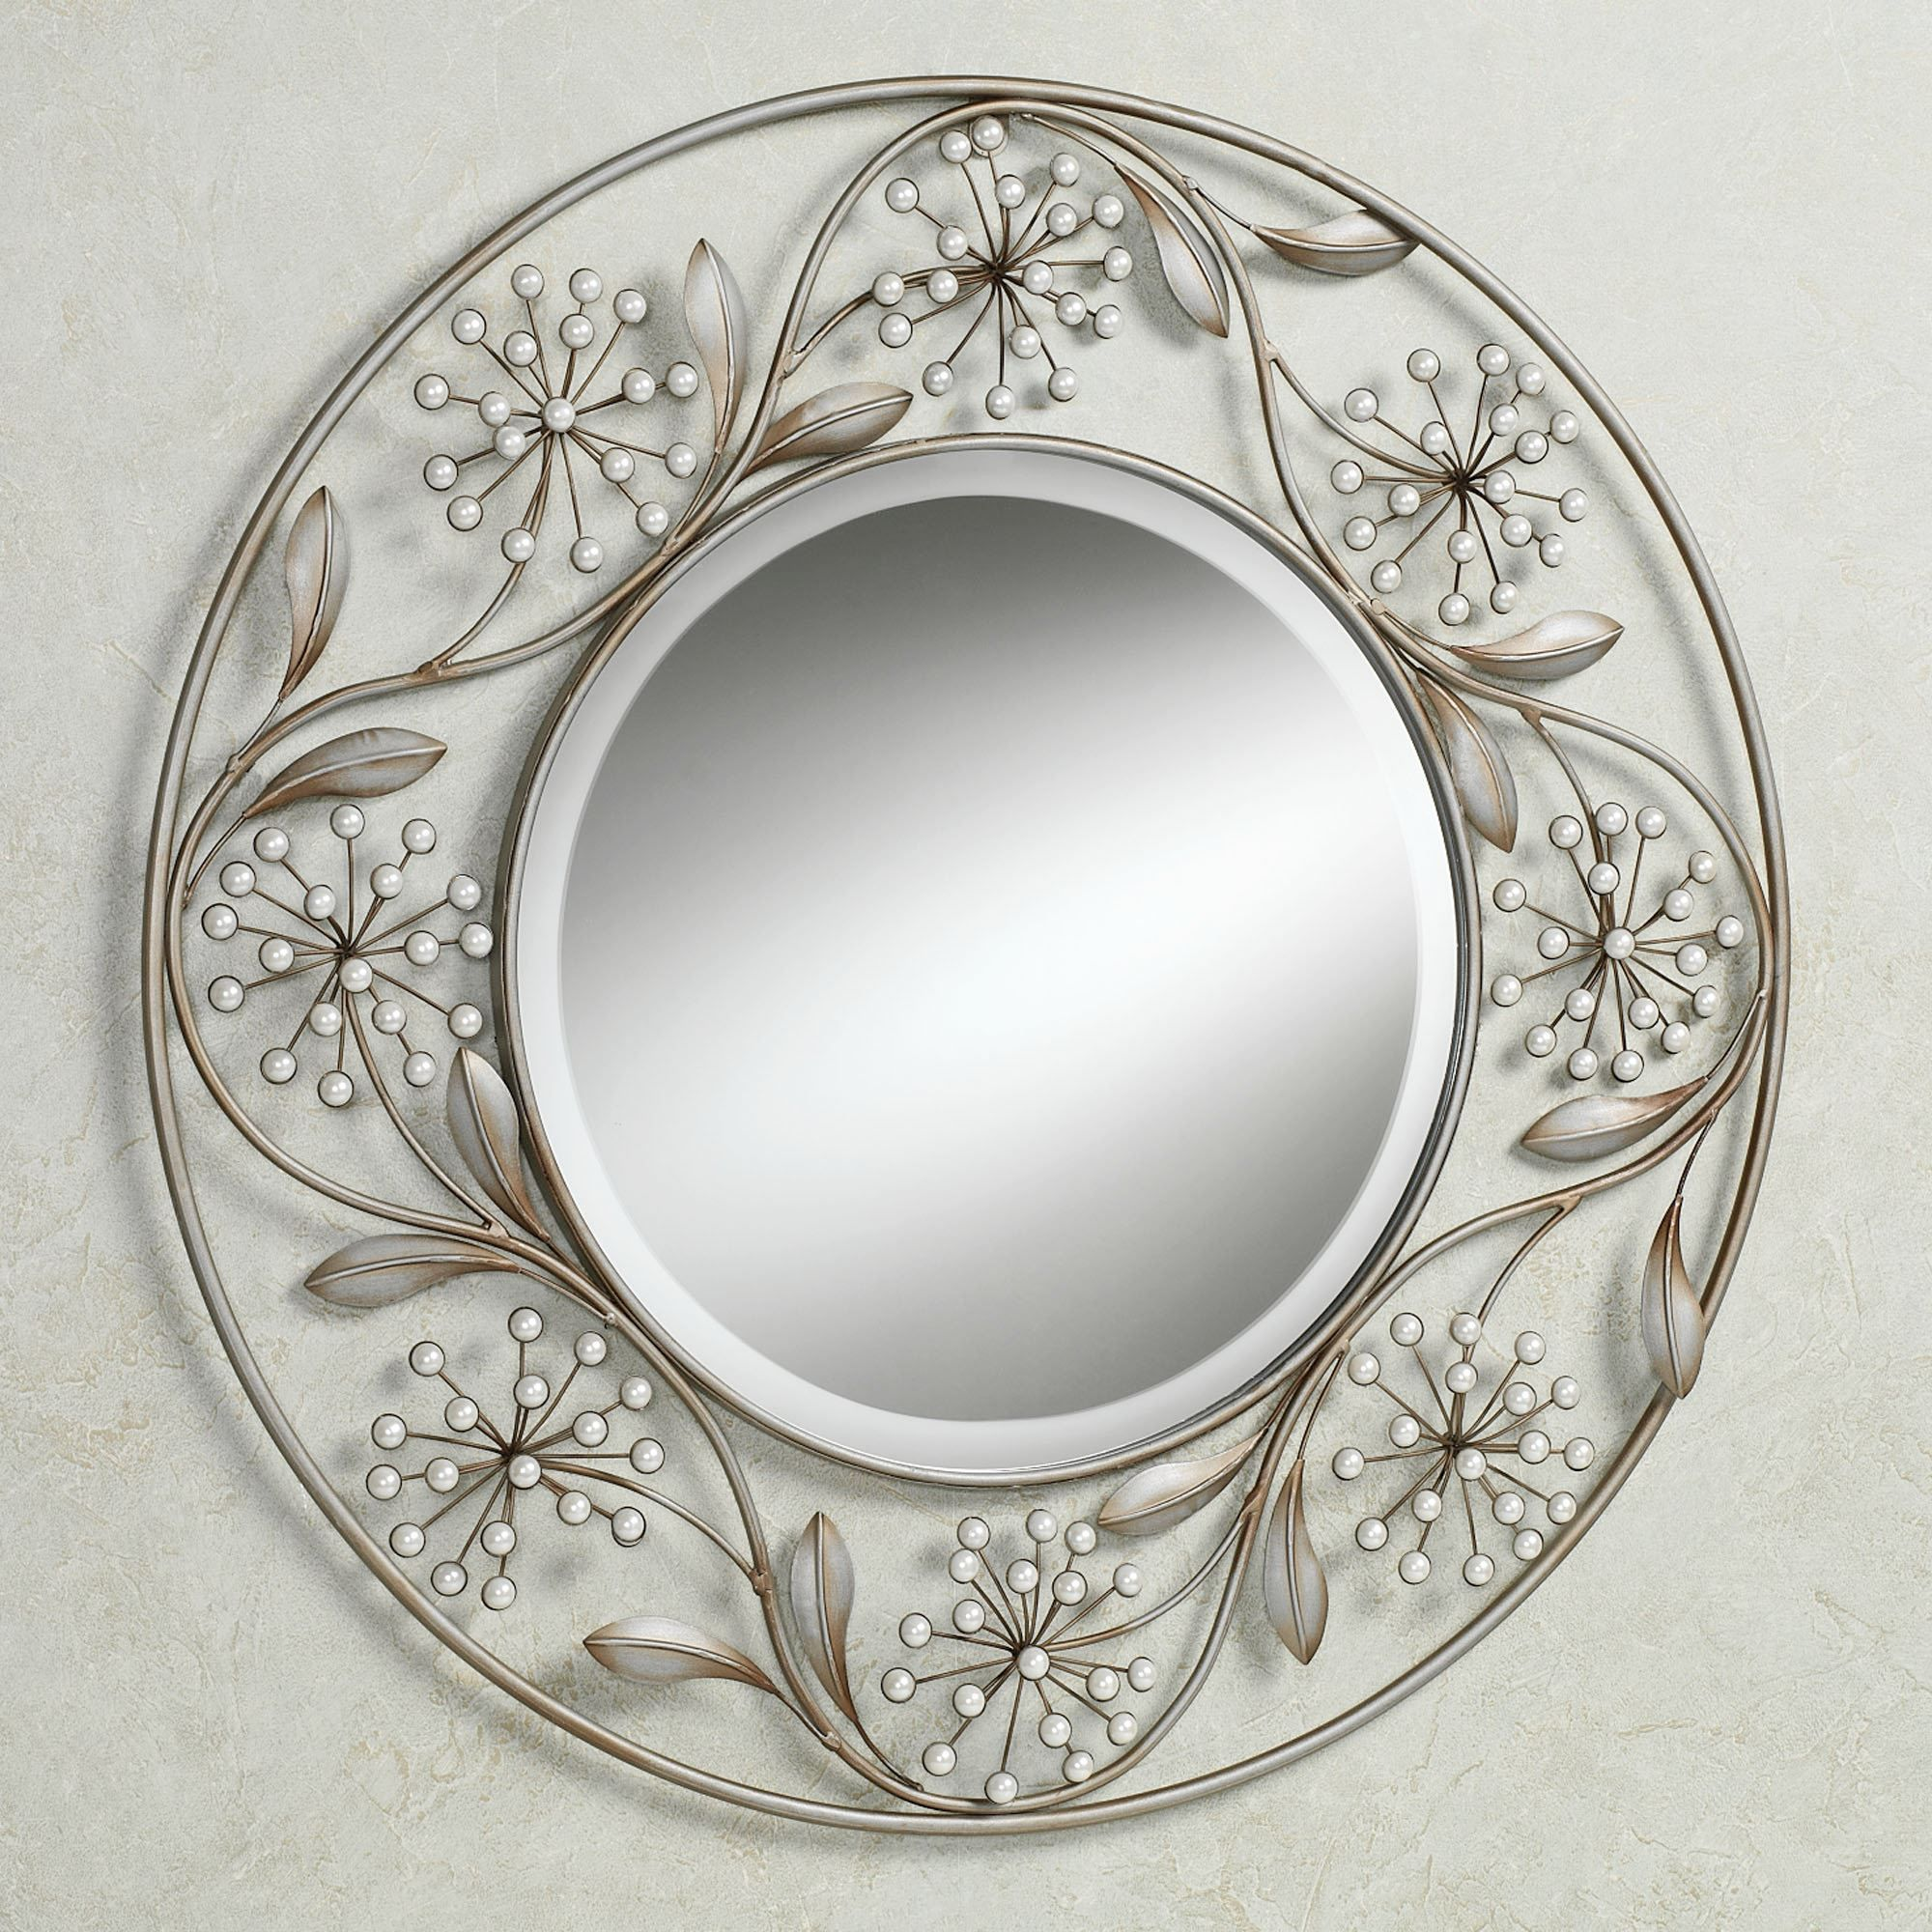 livingroom room india is large online statement mirrors beautiful making philippines decor wall gorgeous gold this living in home decorative for designss mirror outstanding ireland